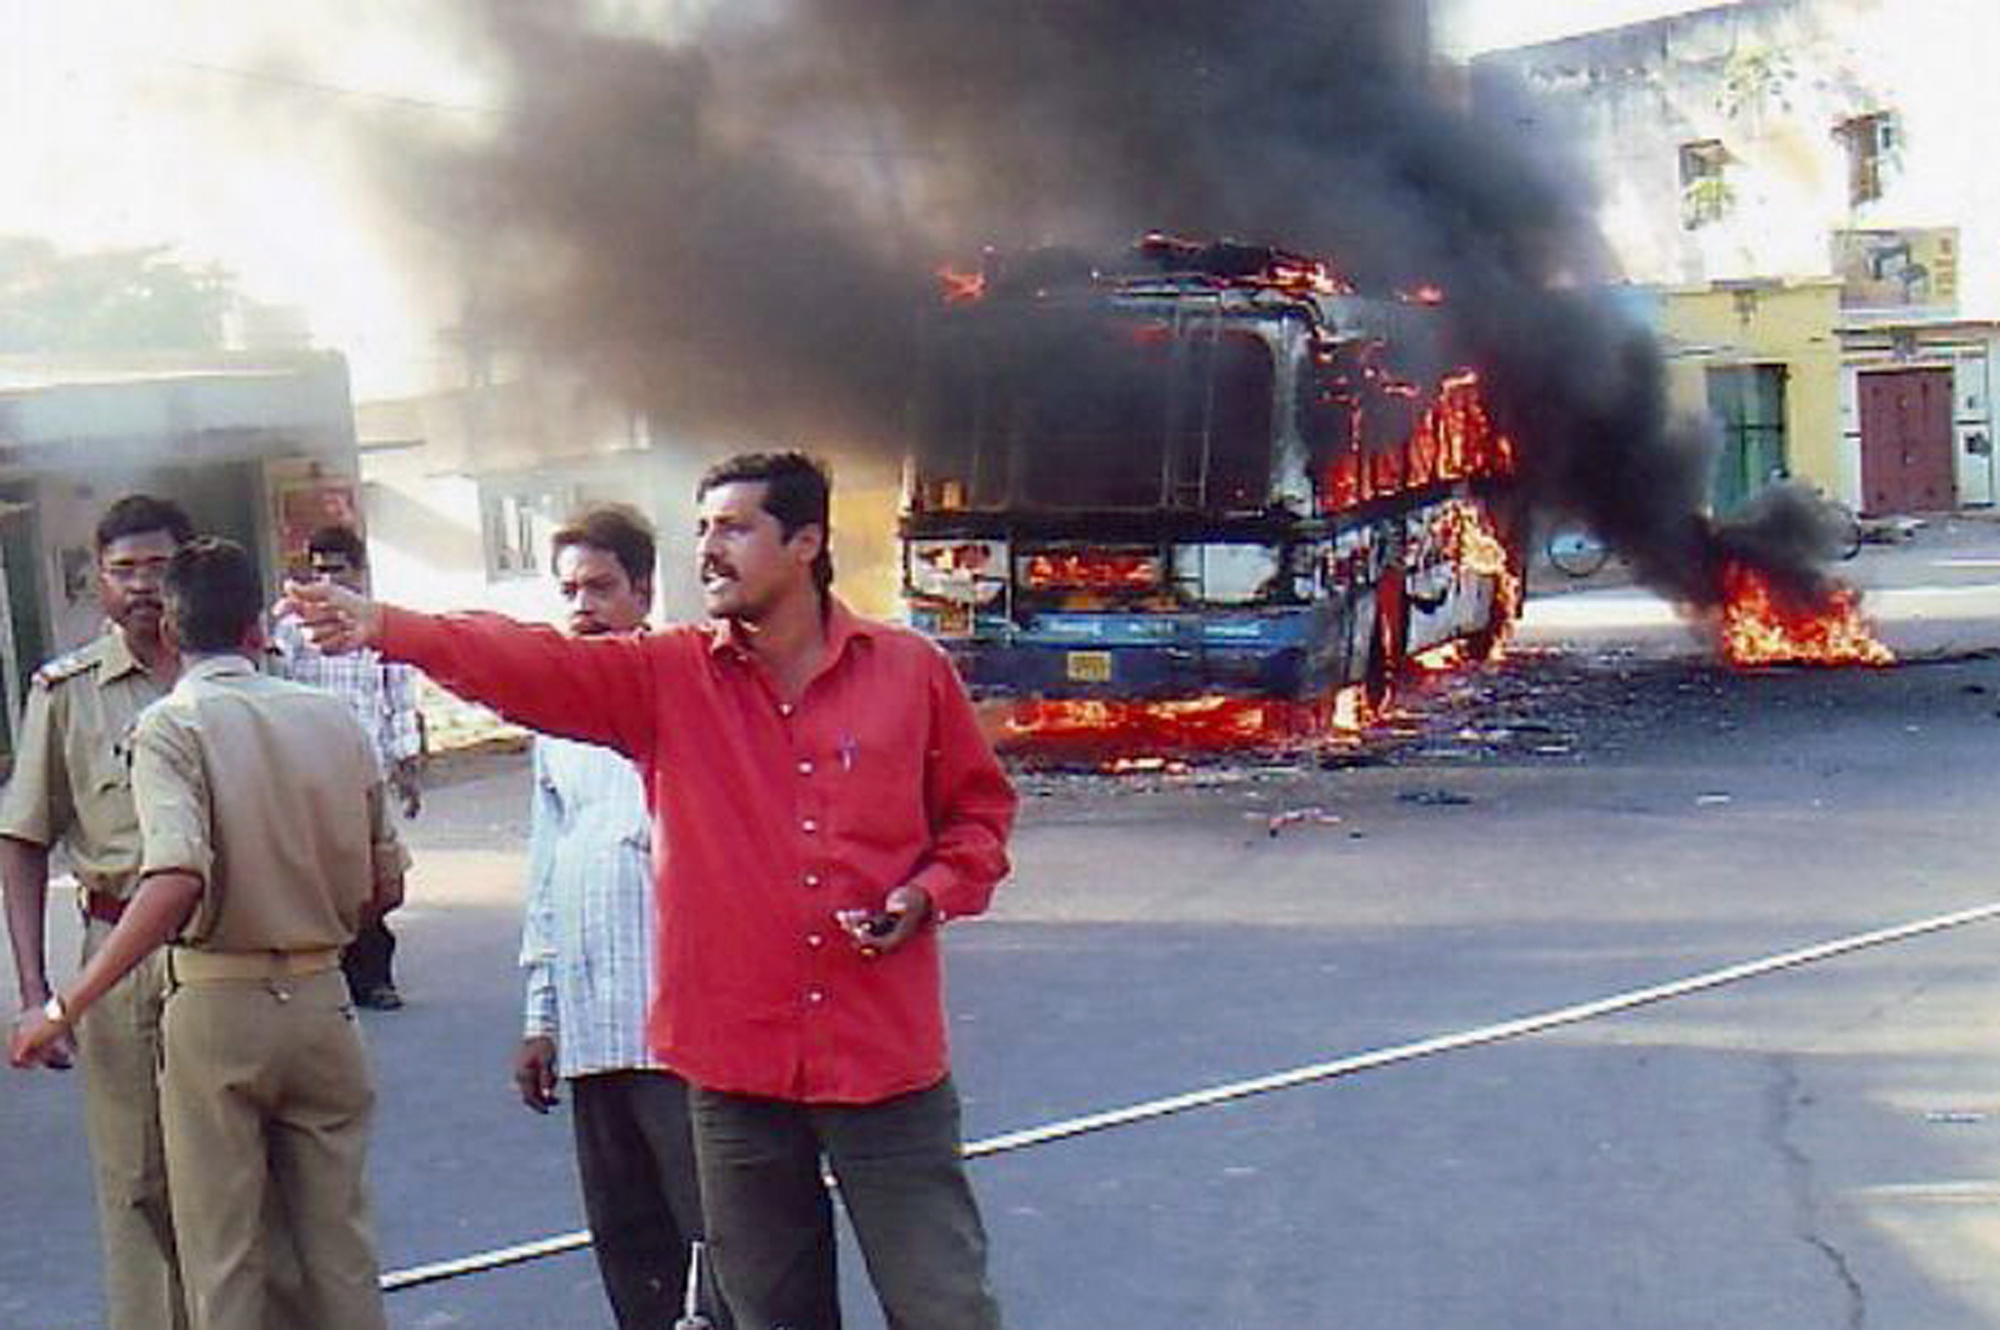 A bus set on fire by protesters goes up in flames at Baliguda in Phulbani district in Orissa state, India on Wednesday.